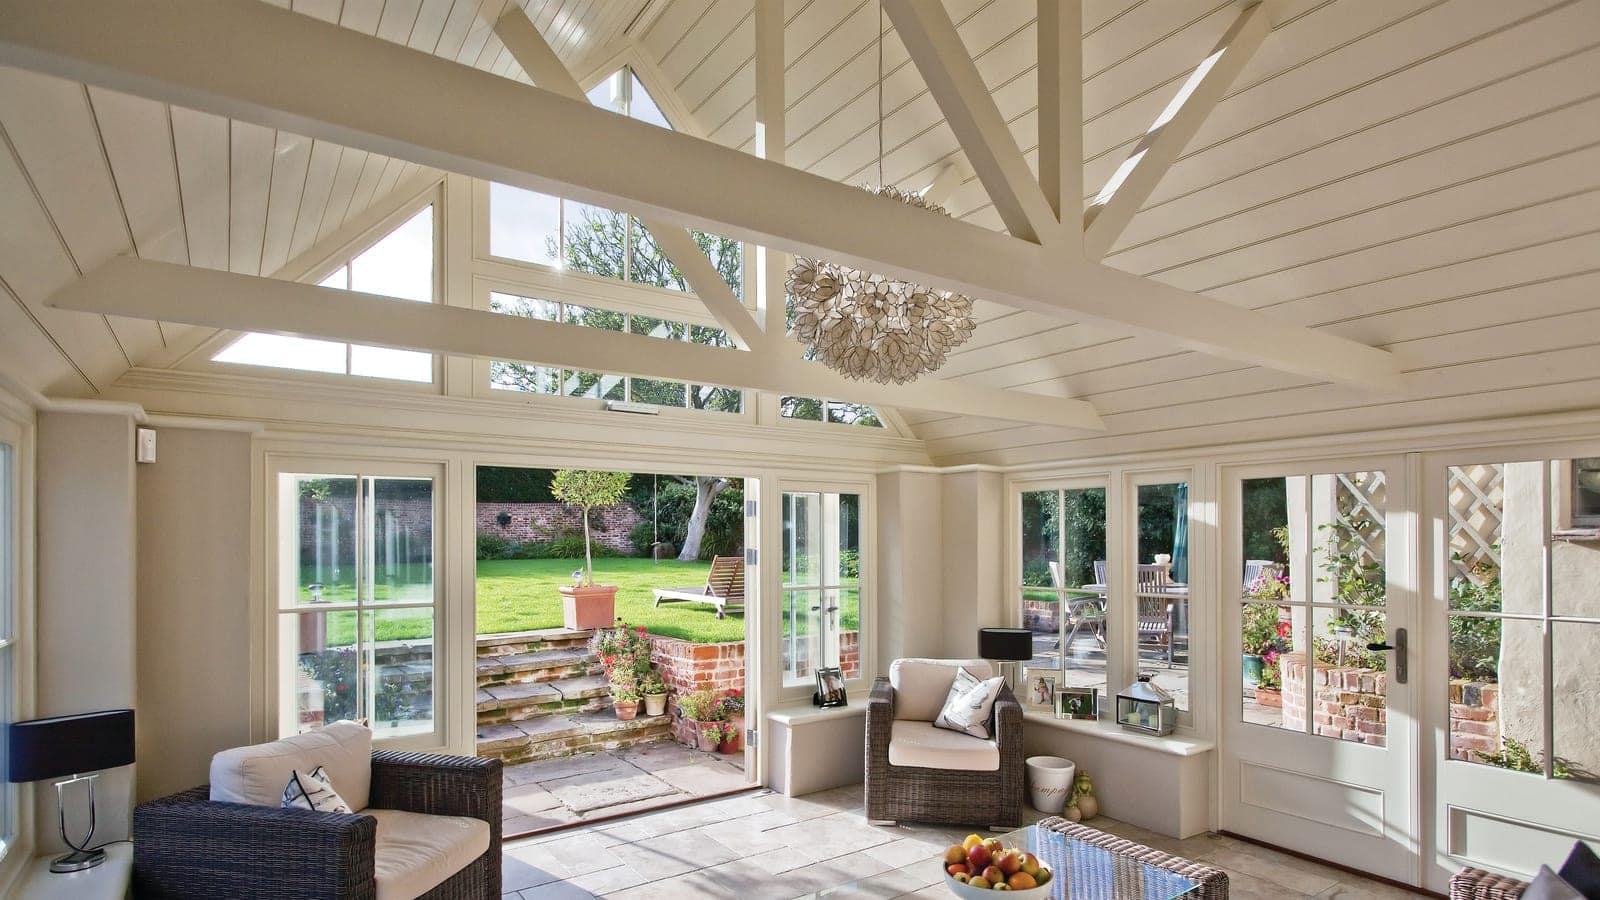 View from inside a spectacular garden room featuring a glazed gable end and french doors